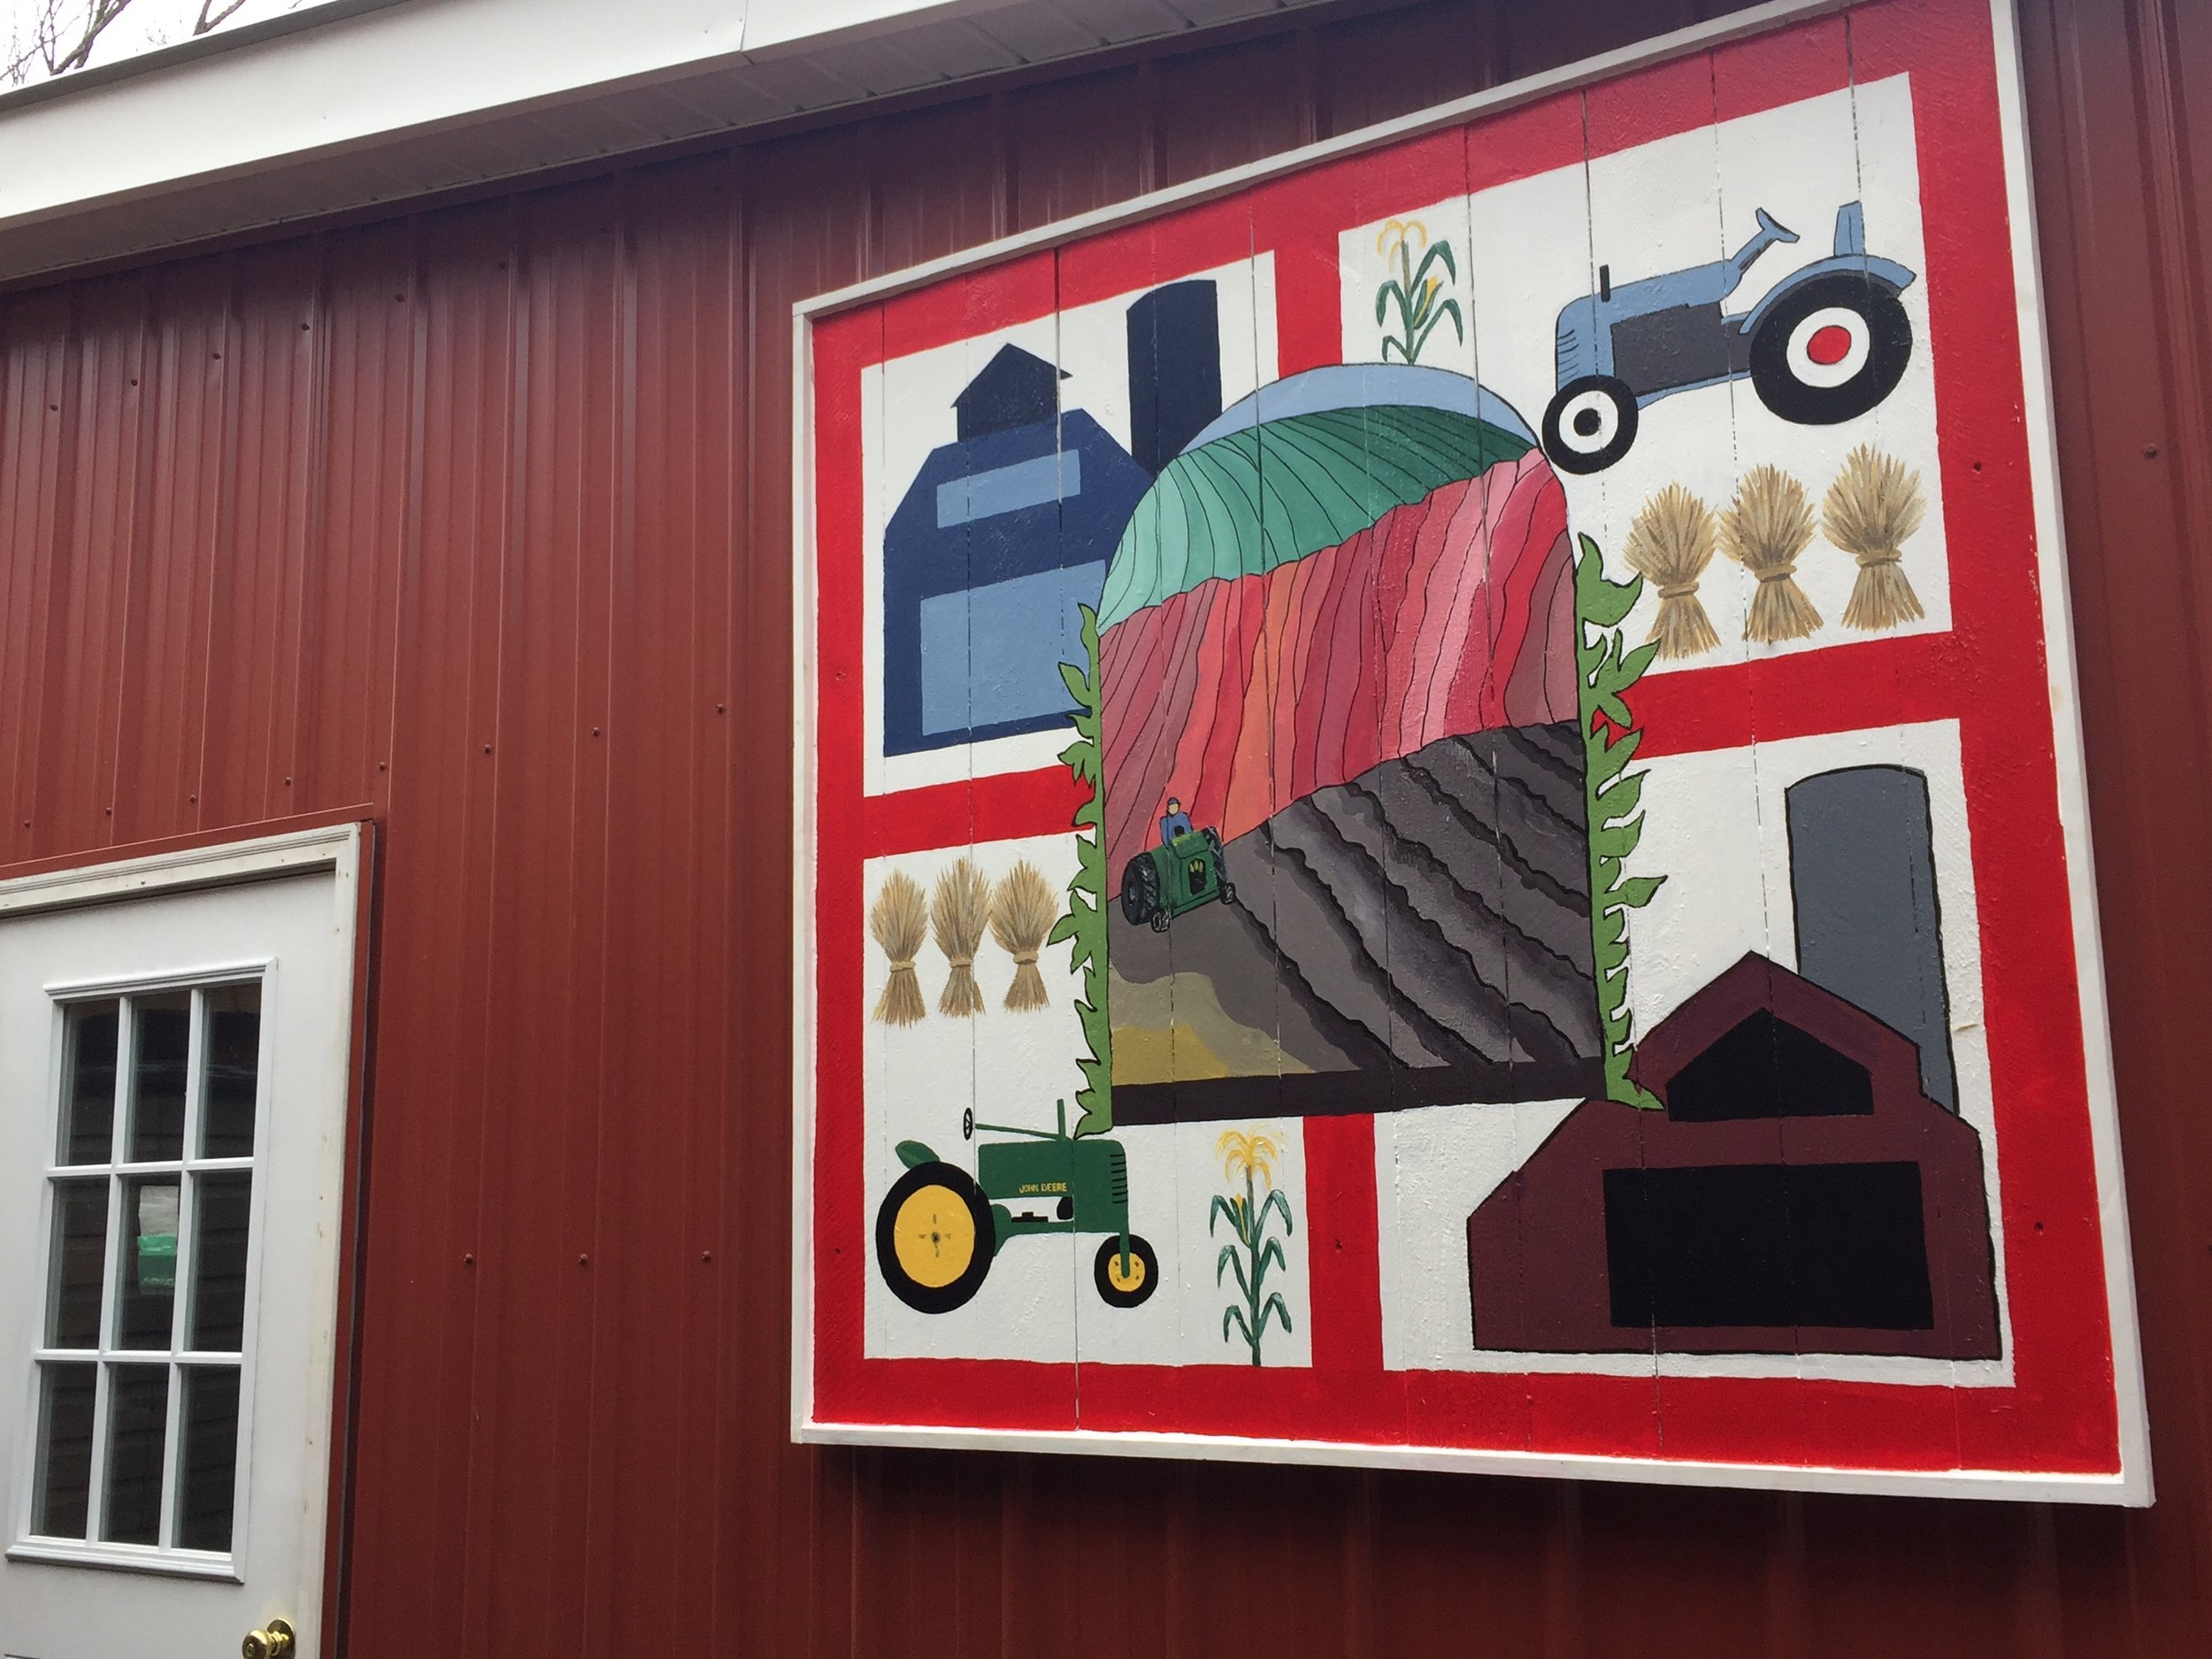 Our new Lord's Harvest barn quilt designed by dear friend Judi Davids